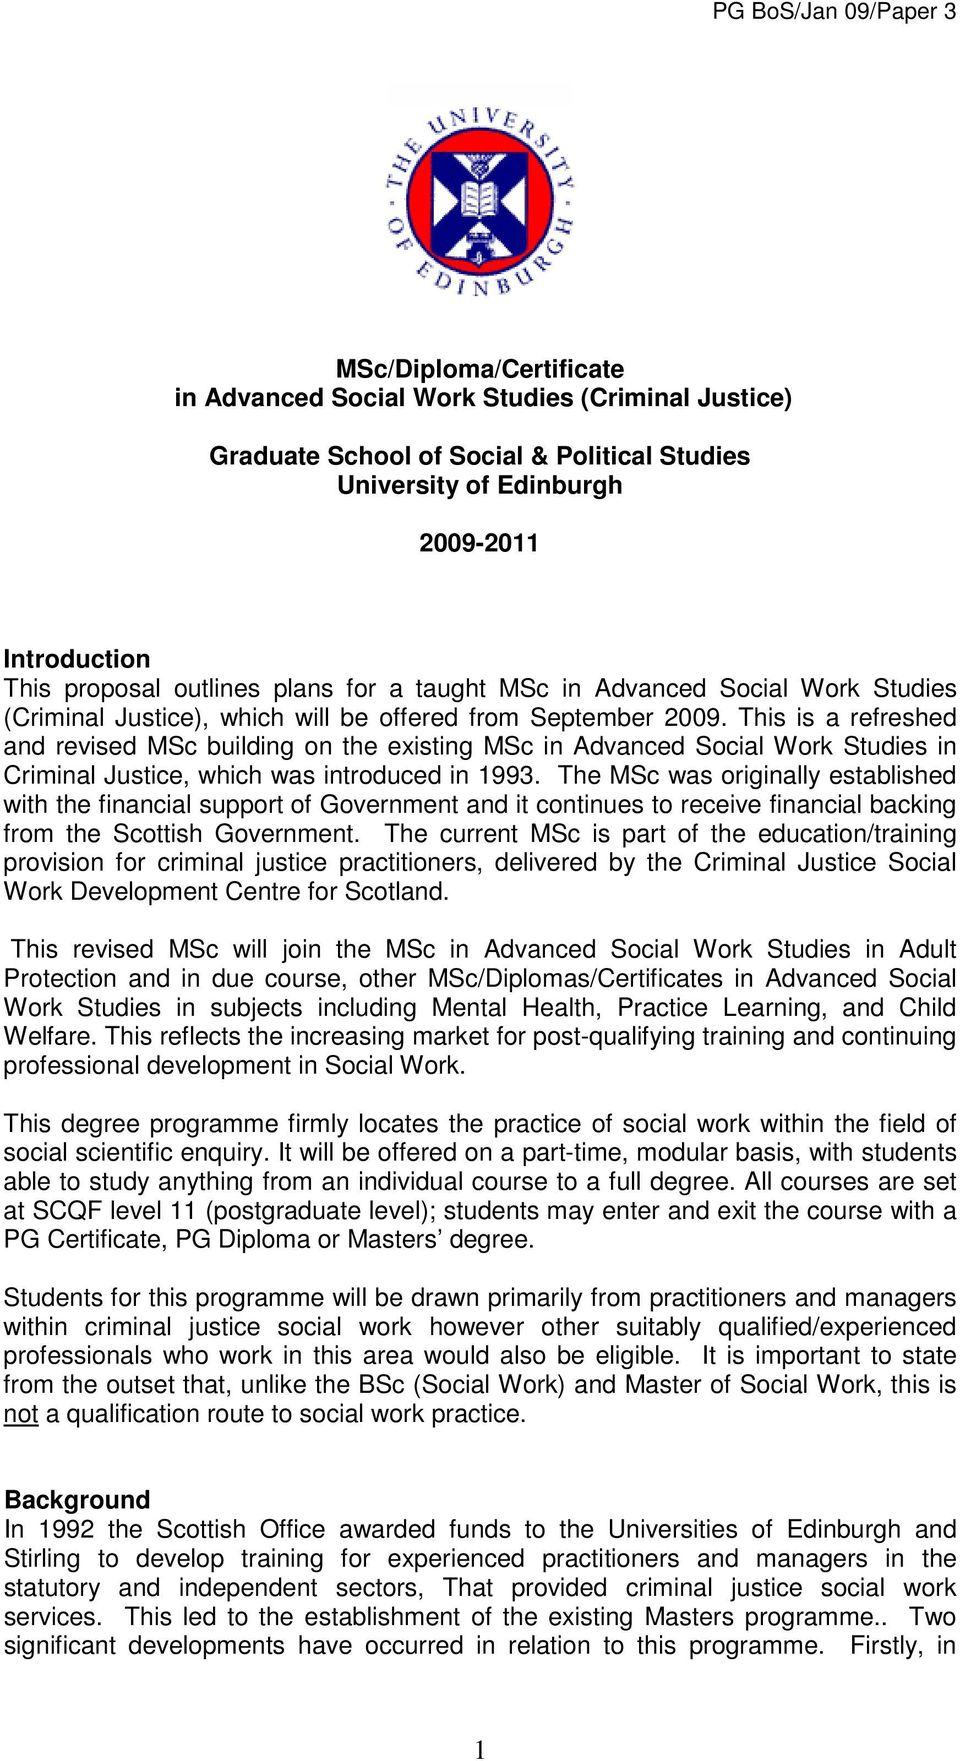 This is a refreshed and revised MSc building on the existing MSc in Advanced Social Work Studies in Criminal Justice, which was introduced in 1993.